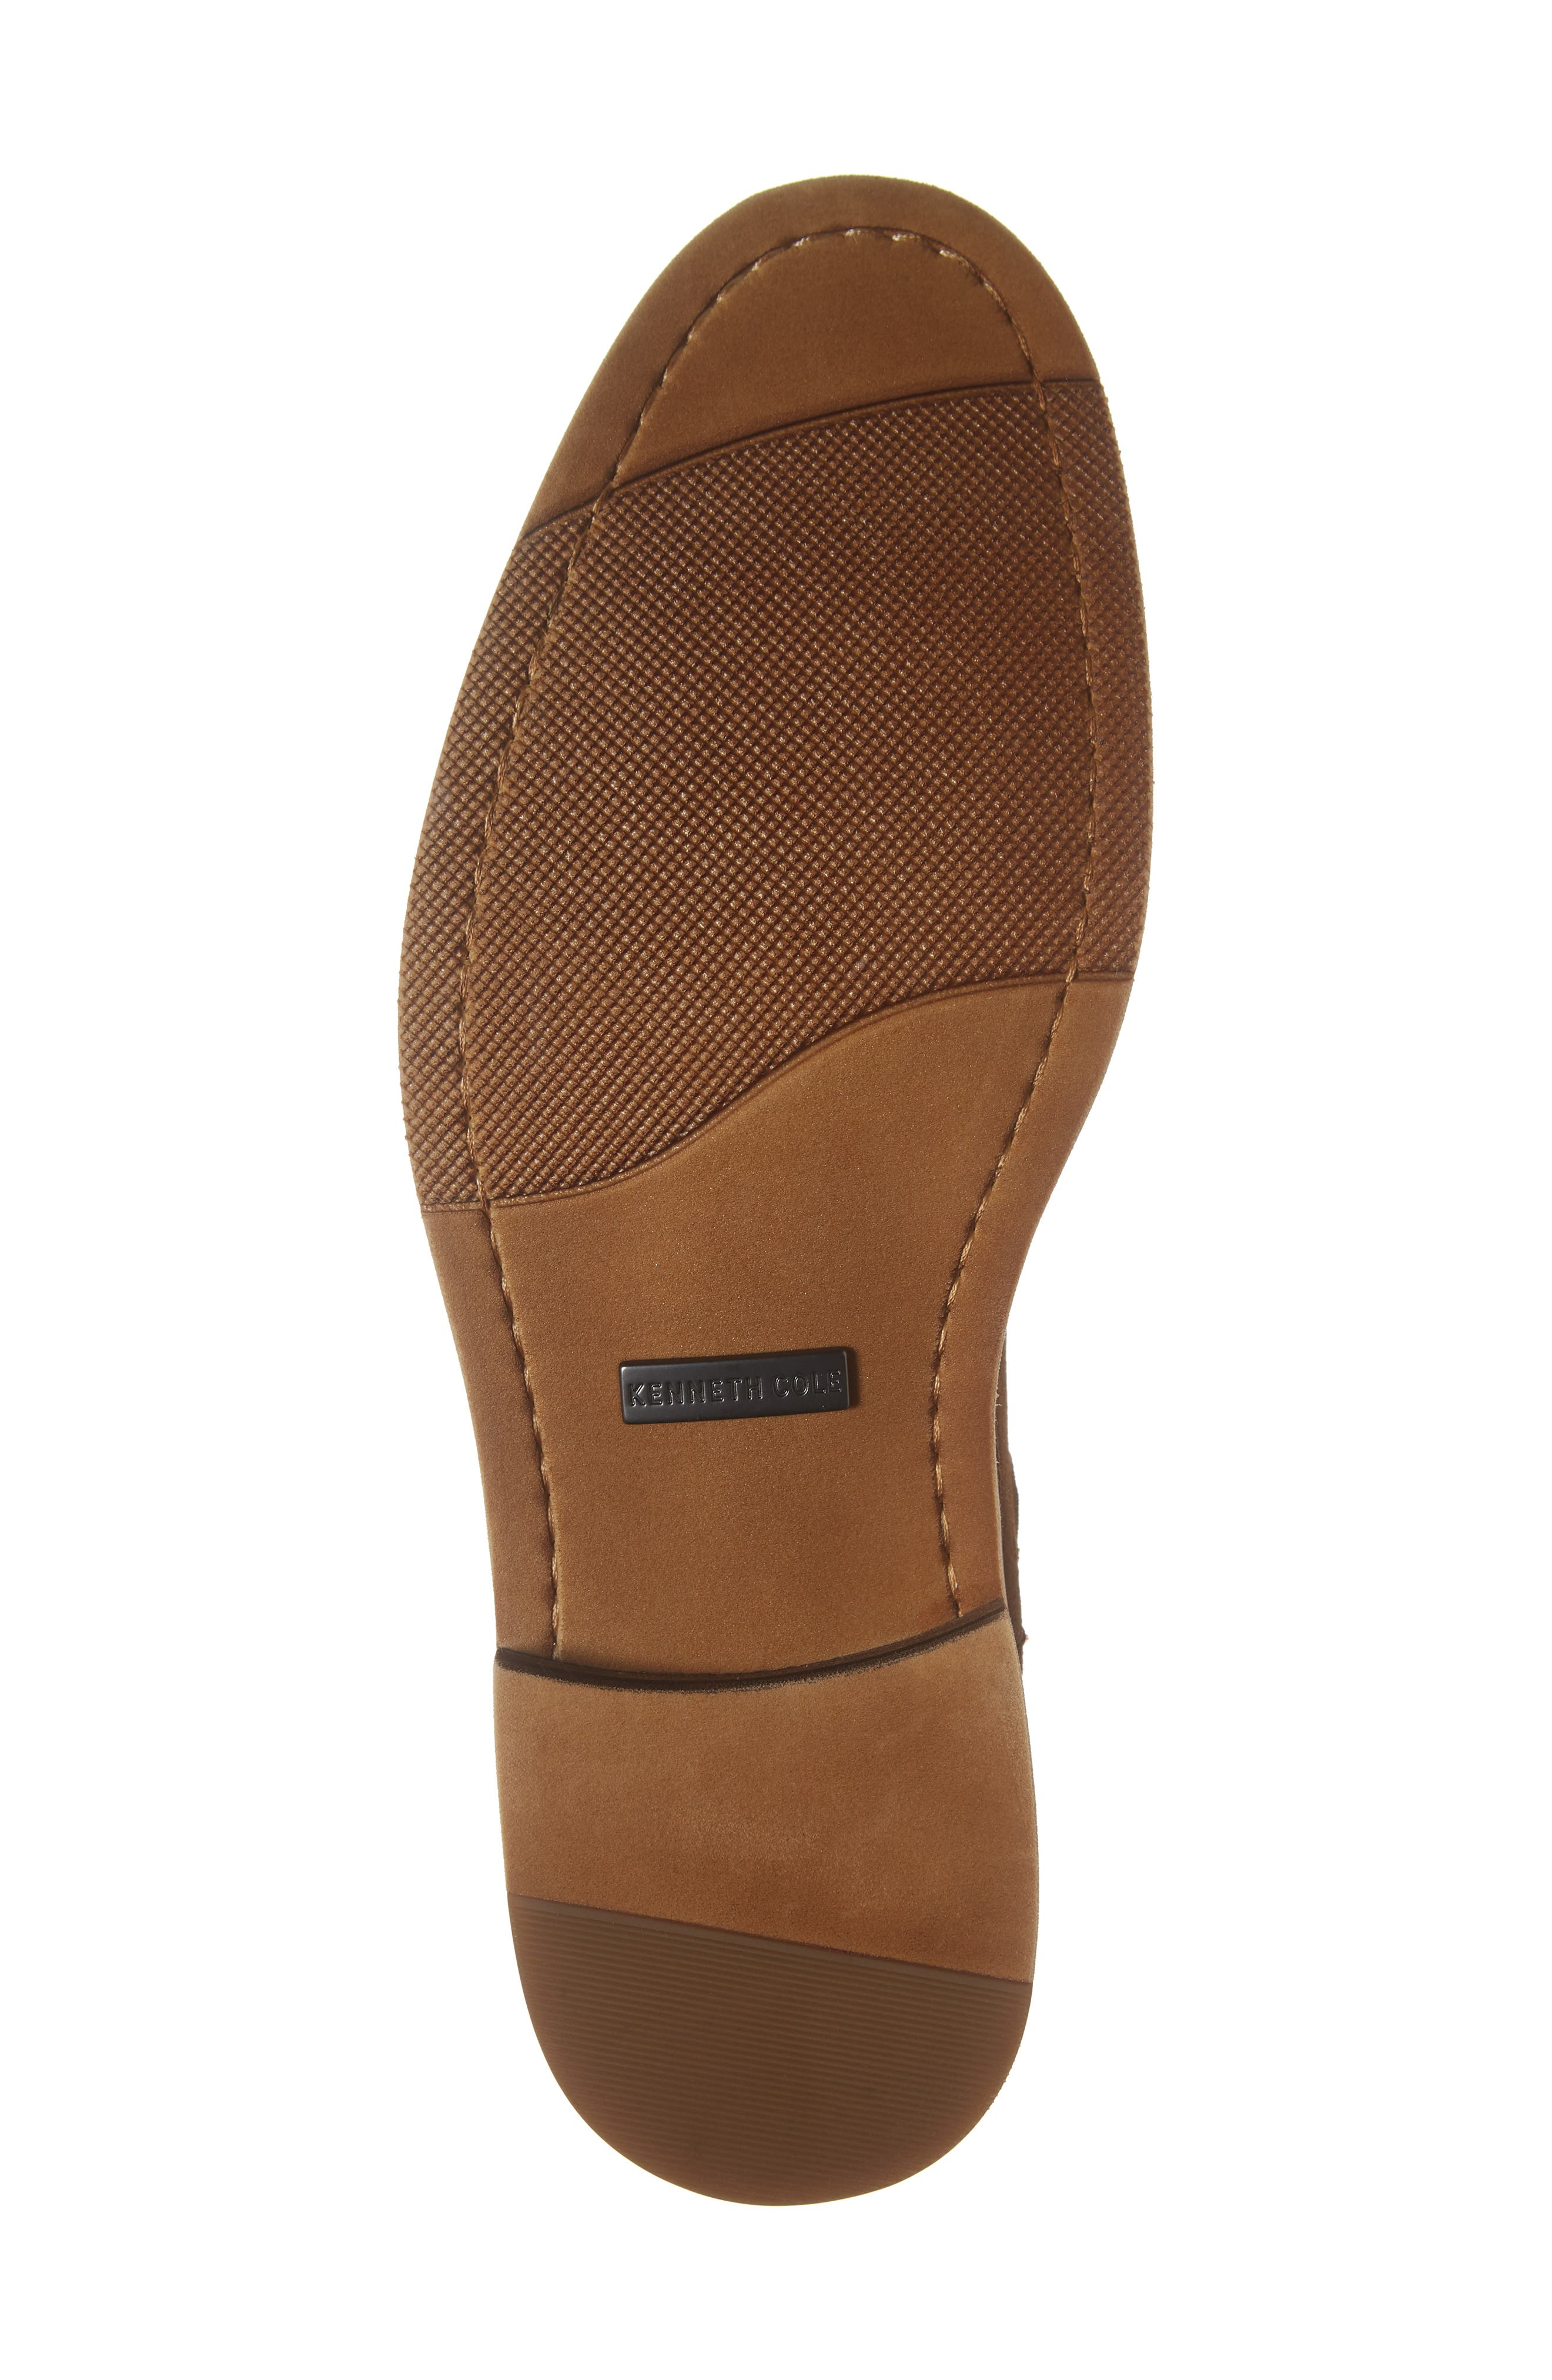 Whistler Mid Chelsea Boot,                             Alternate thumbnail 6, color,                             TOBACCO SUEDE